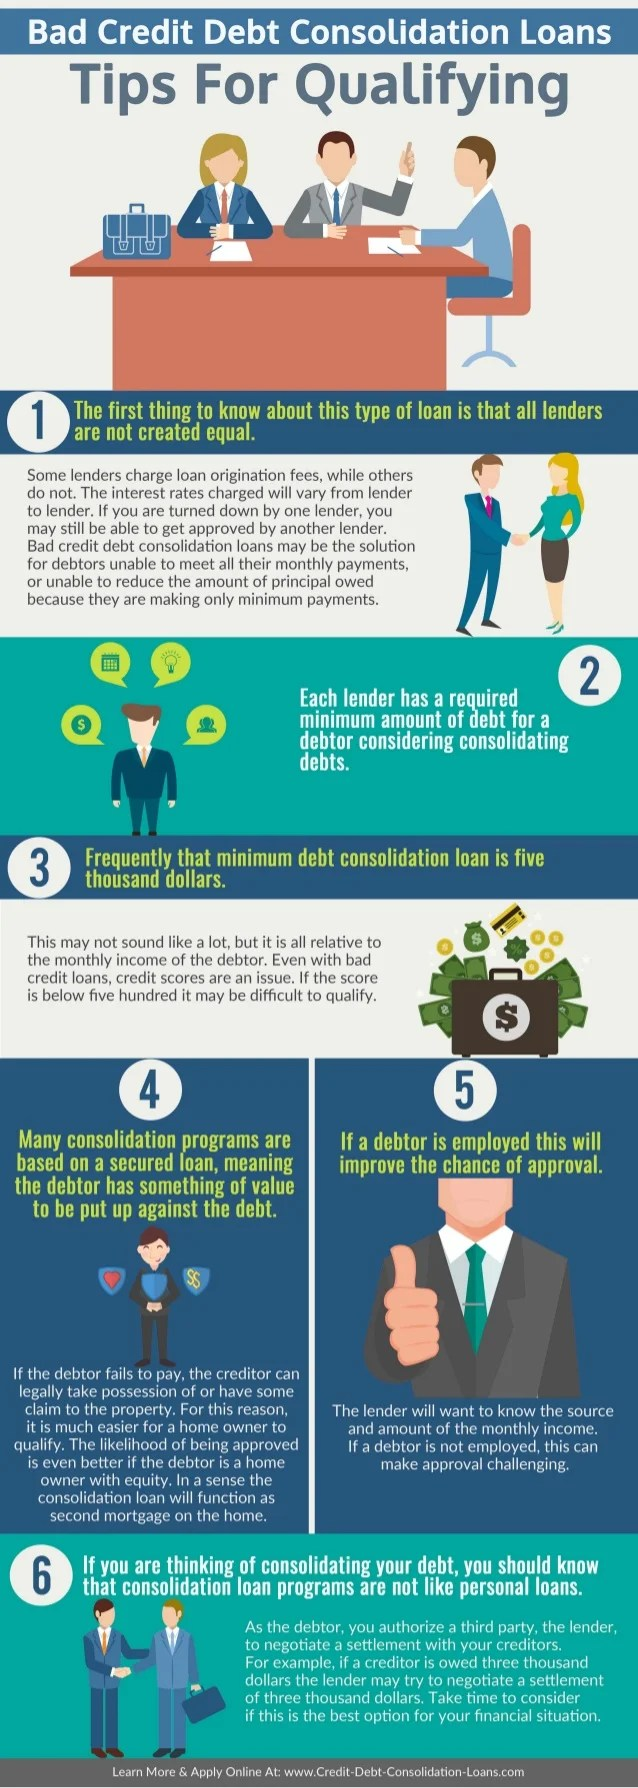 Bad Credit Debt Consolidation Loans: Tips For Qualifying